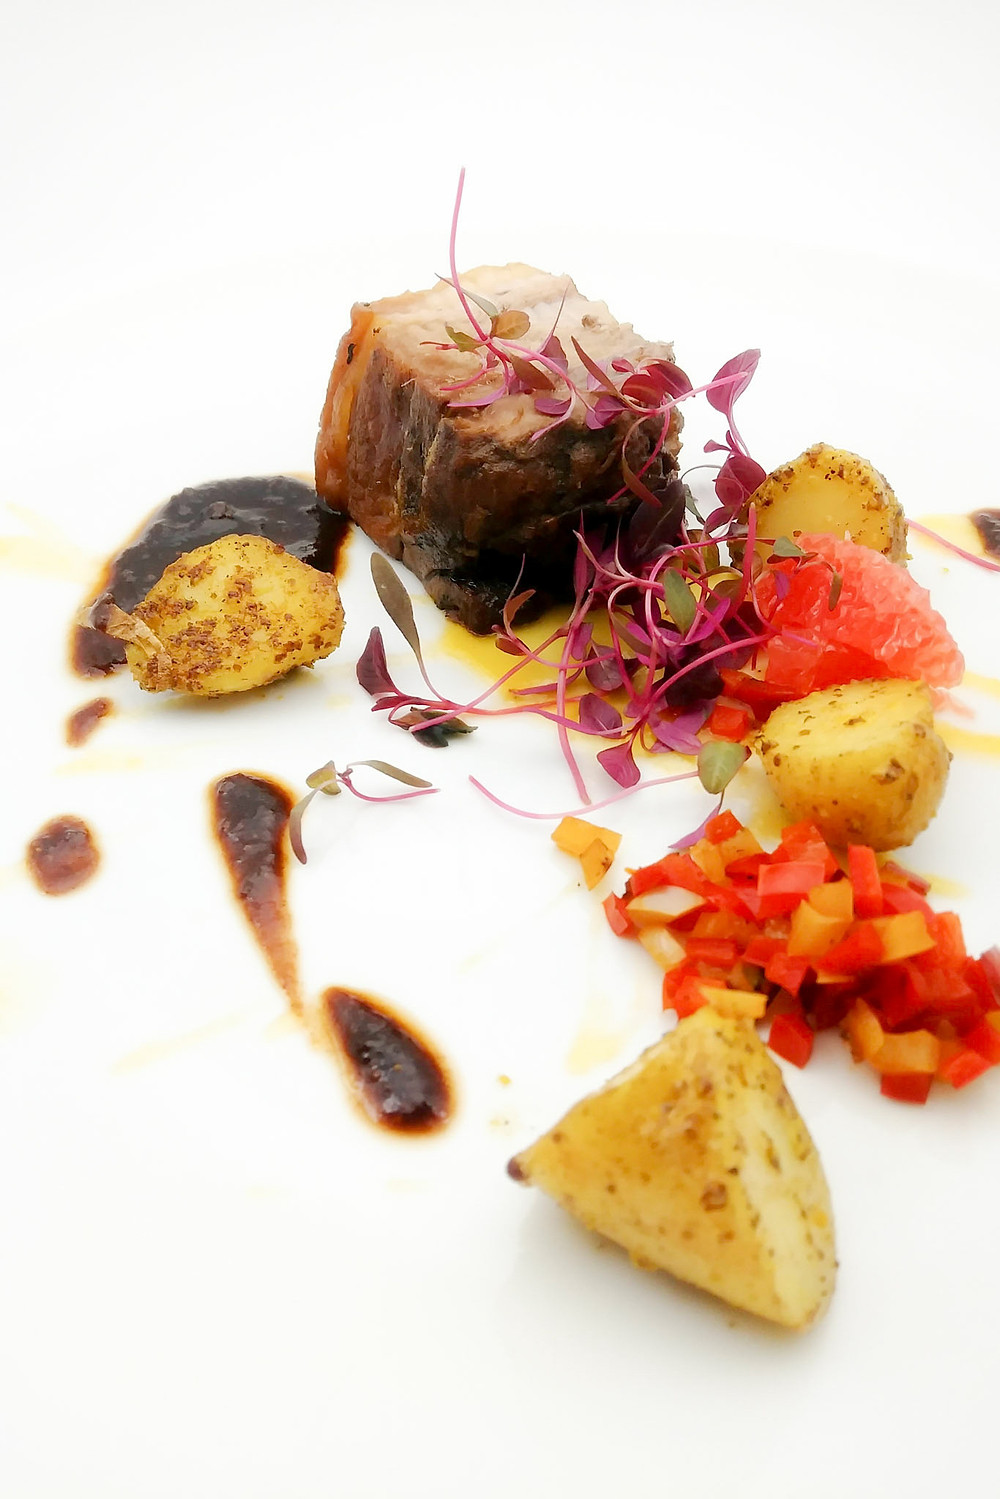 Roasted Leg of Wild Boar with Peppers, Fingerling Potato and Pink Grapefruit. Shef & Somm.